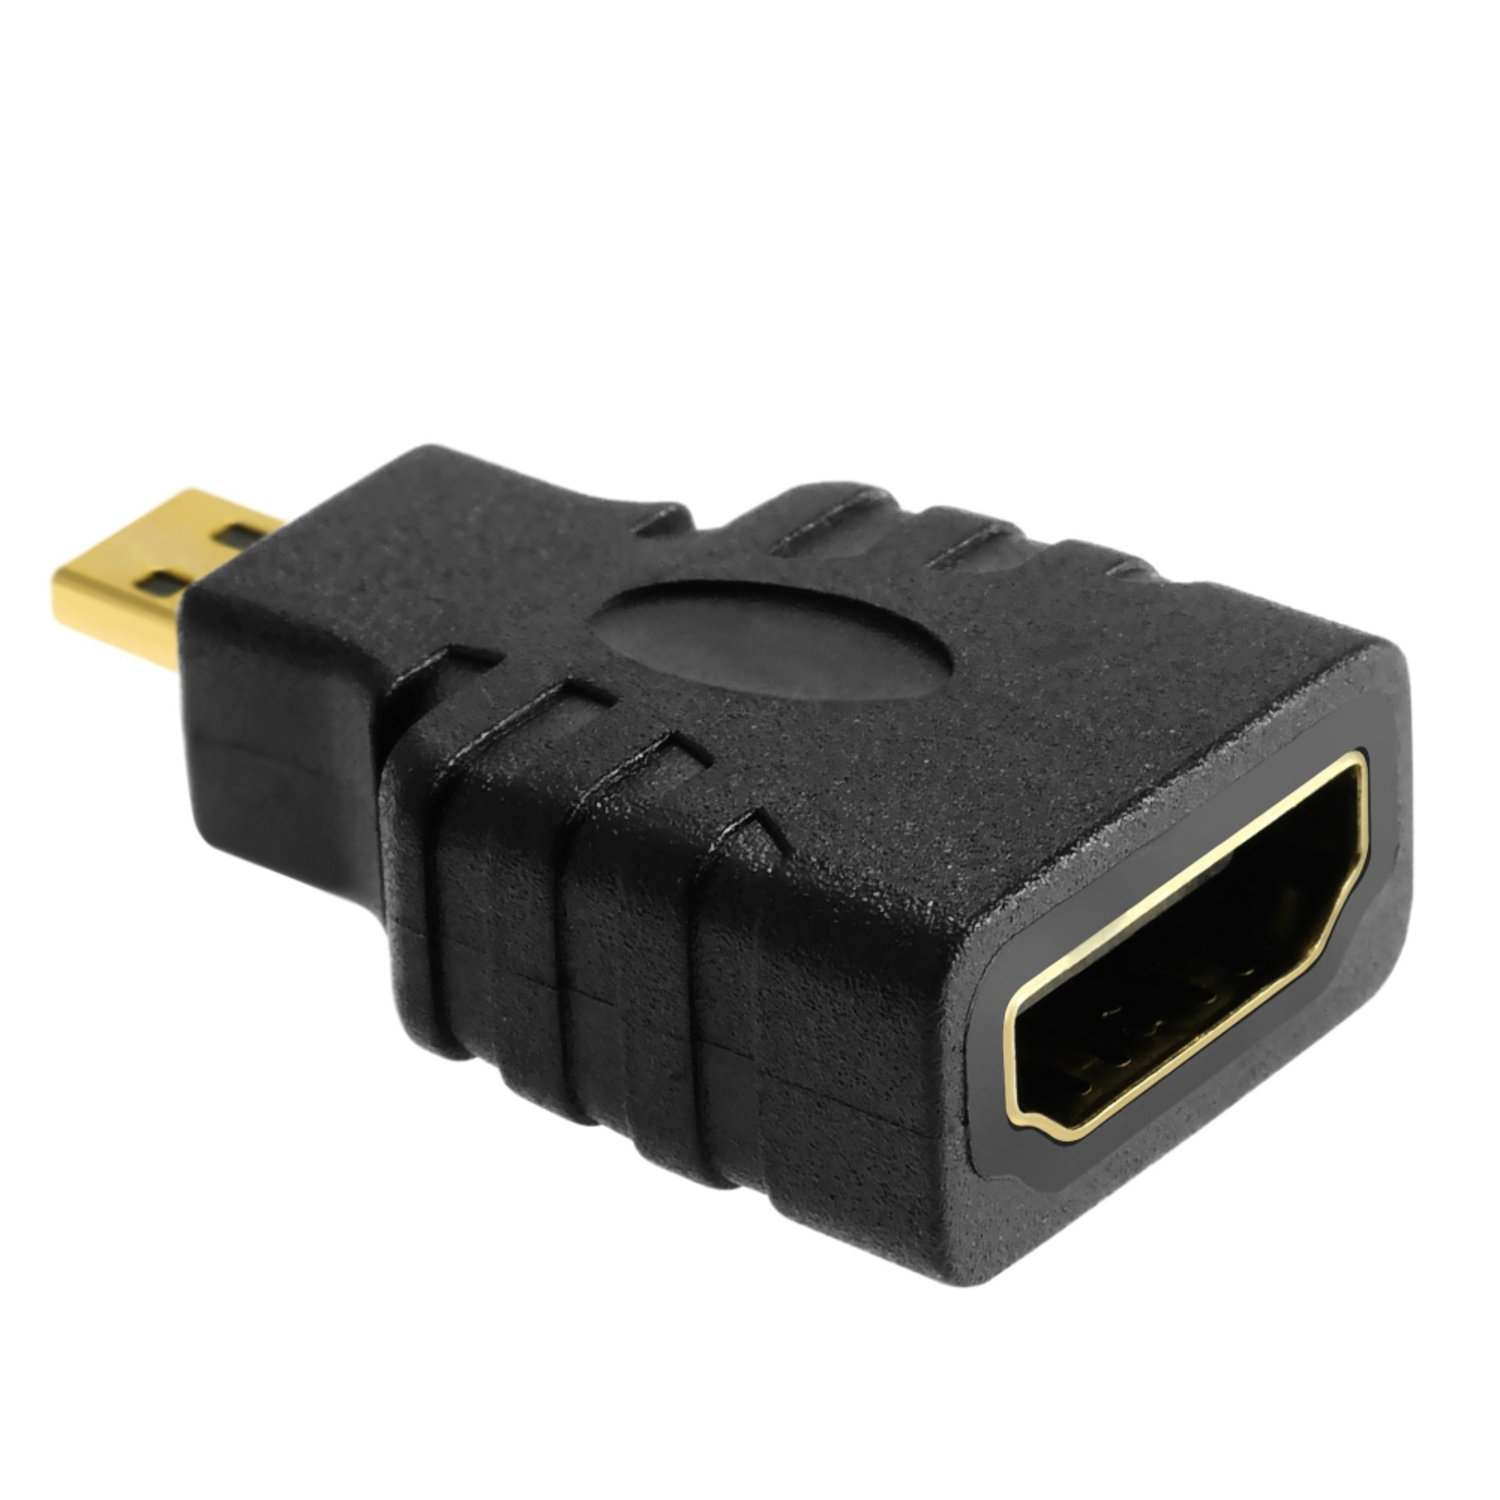 Insten Micro HDMI Connector Male to HDMI Connector Female Port Saver Adapter (Micro HDMI-M to HDMI-F) Micro HDMI Adapter Male to Female